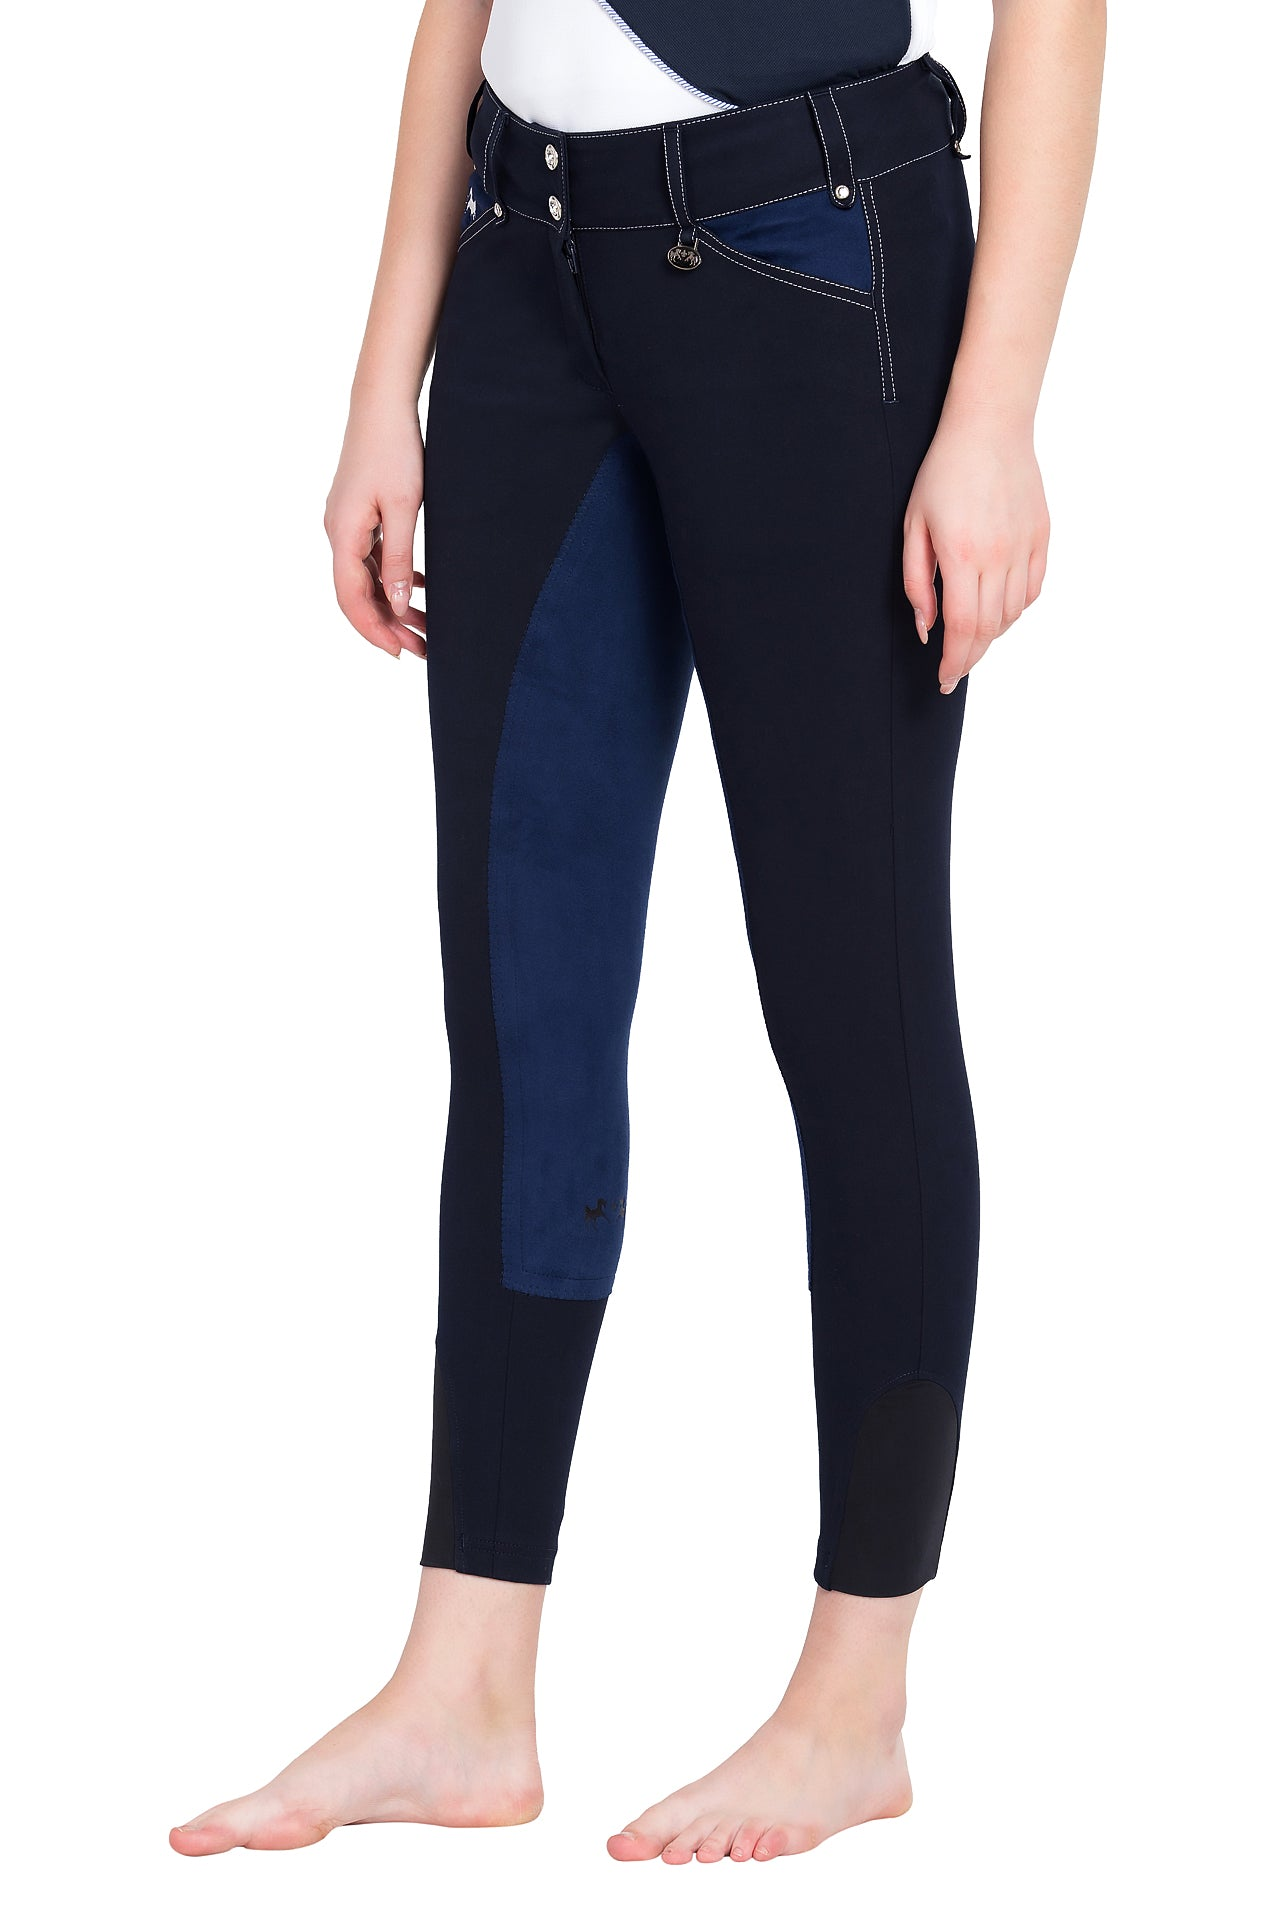 Equine Couture Ladies Blakely Full Seat Breeches_381